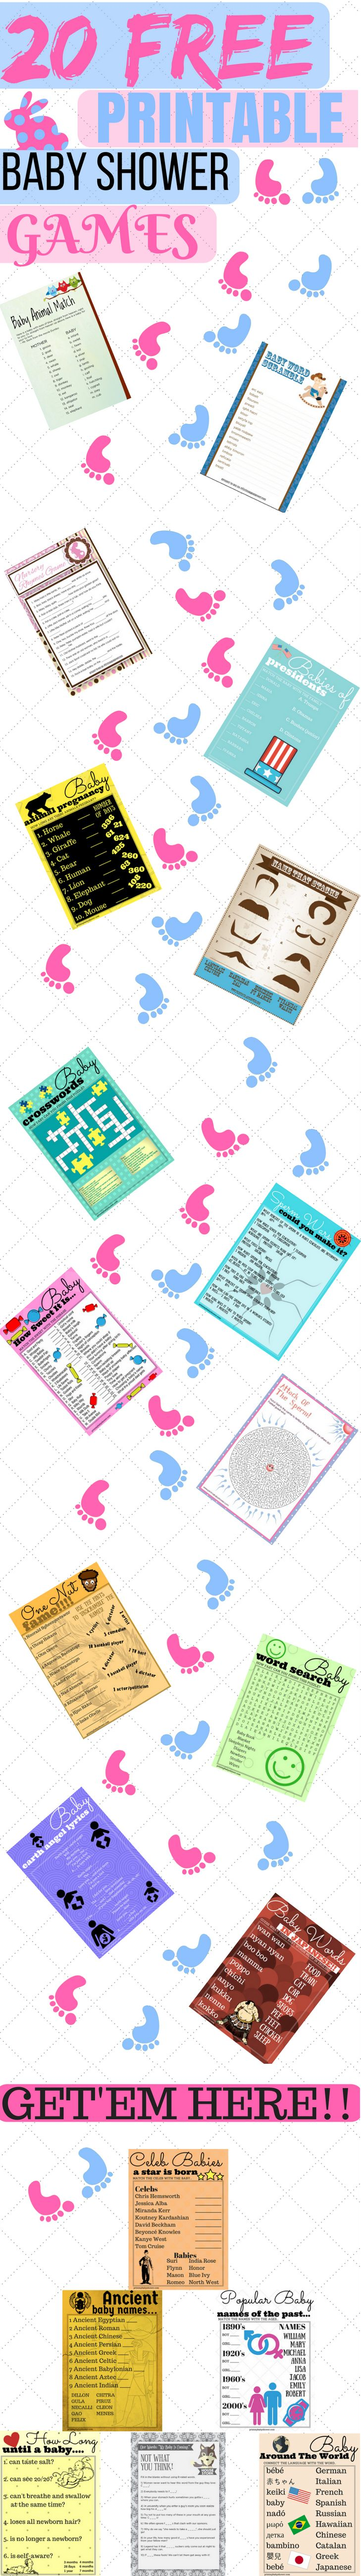 free printable baby shower games | unique baby shower games  at long last we have for you the best printable baby shower games around. The best part is, it's all free. You pay noting.  All you have to do is download them and print them out. Your guests will have an amazing time at your baby shower.